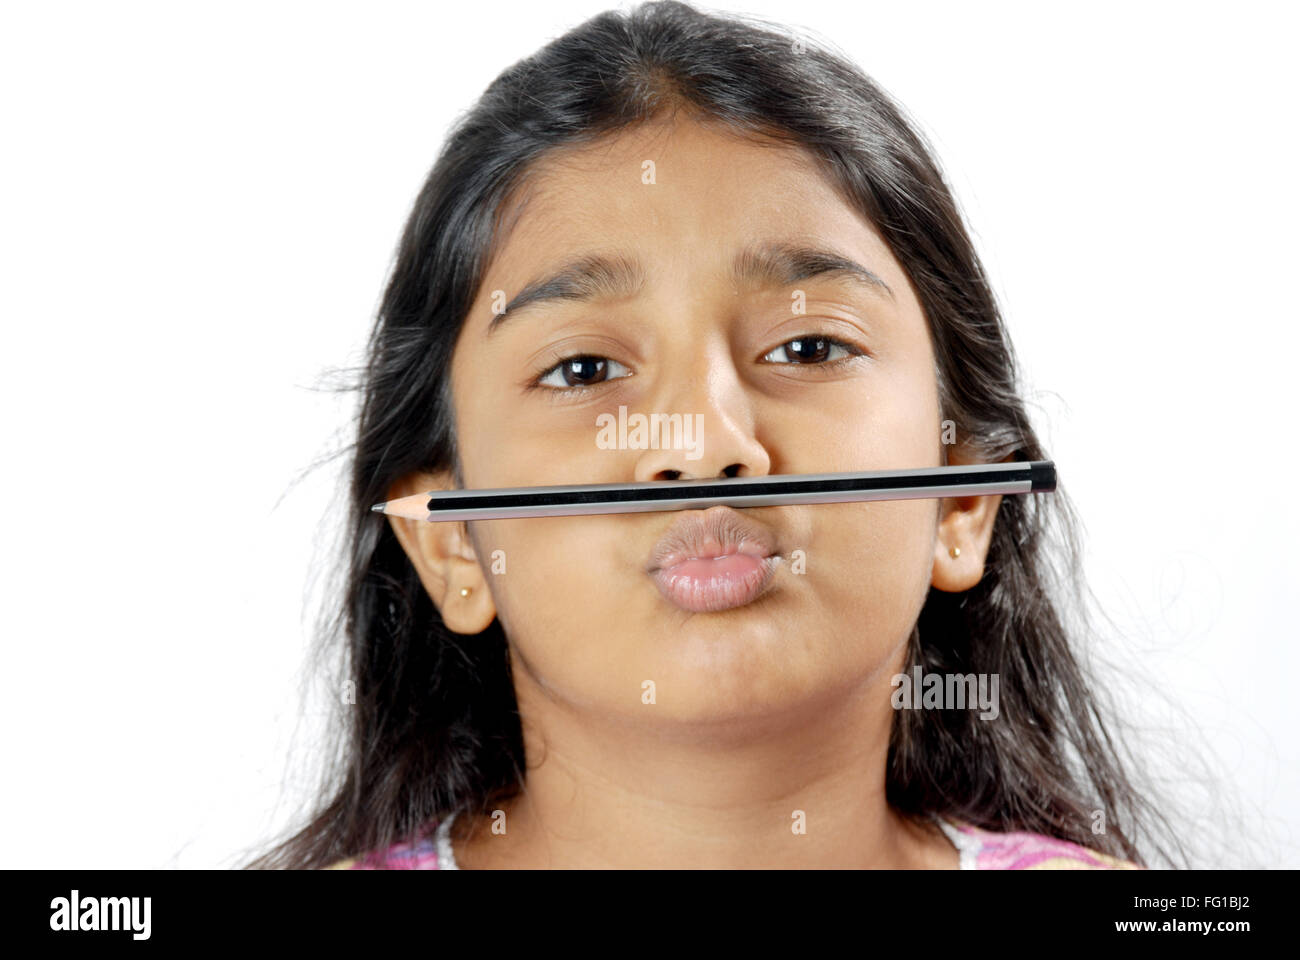 Young naughty girl kept pencil above lips MR# 152 Stock Photo